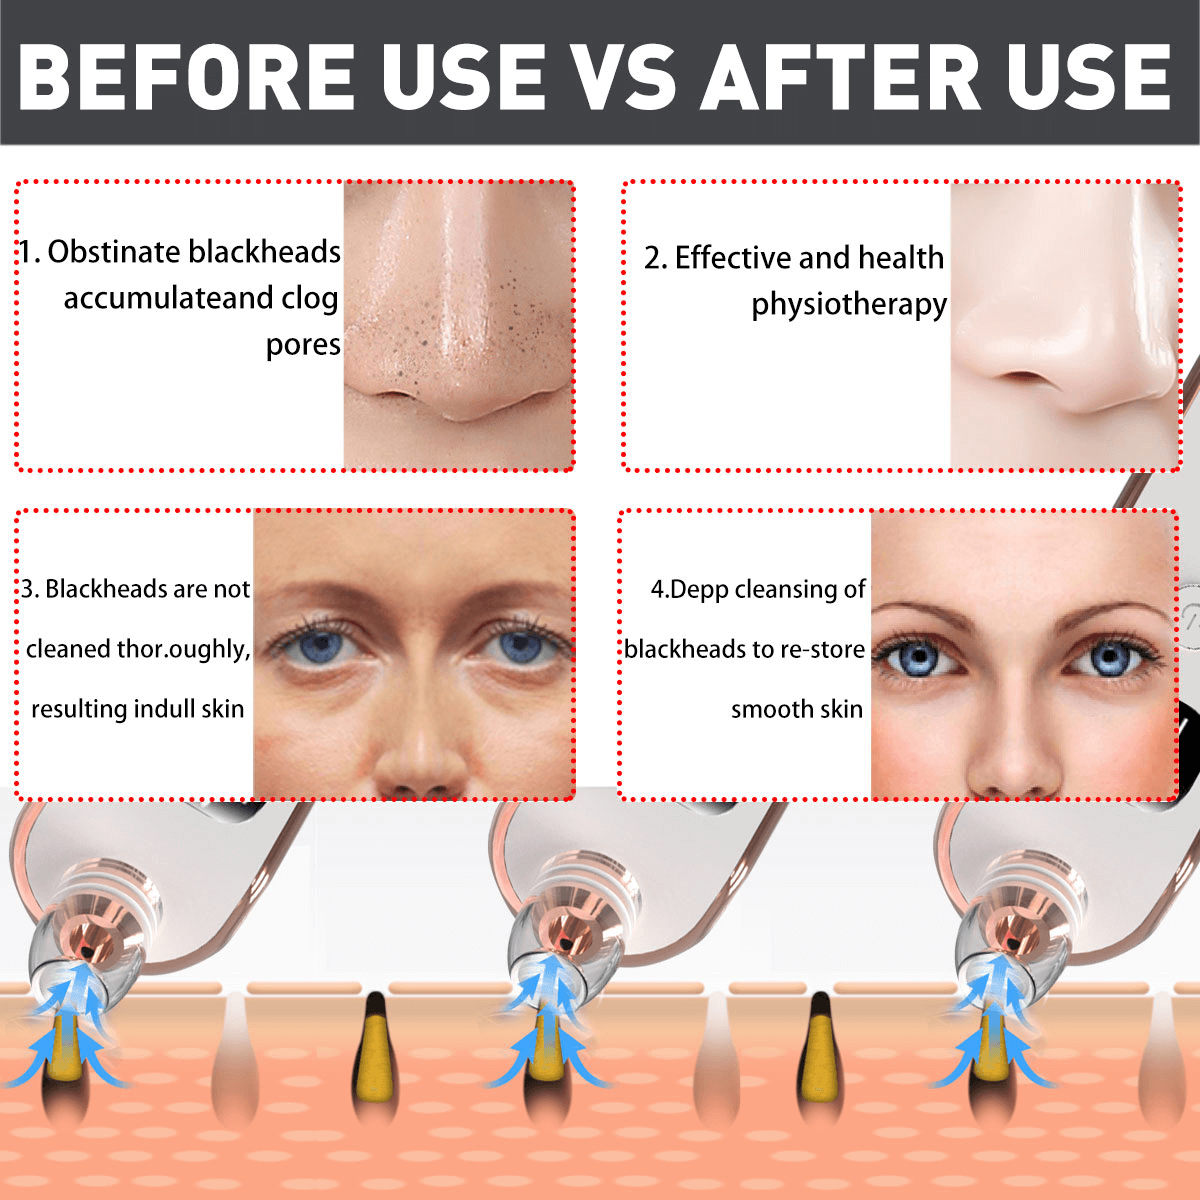 How To Close A Pore After Removing A Blackhead